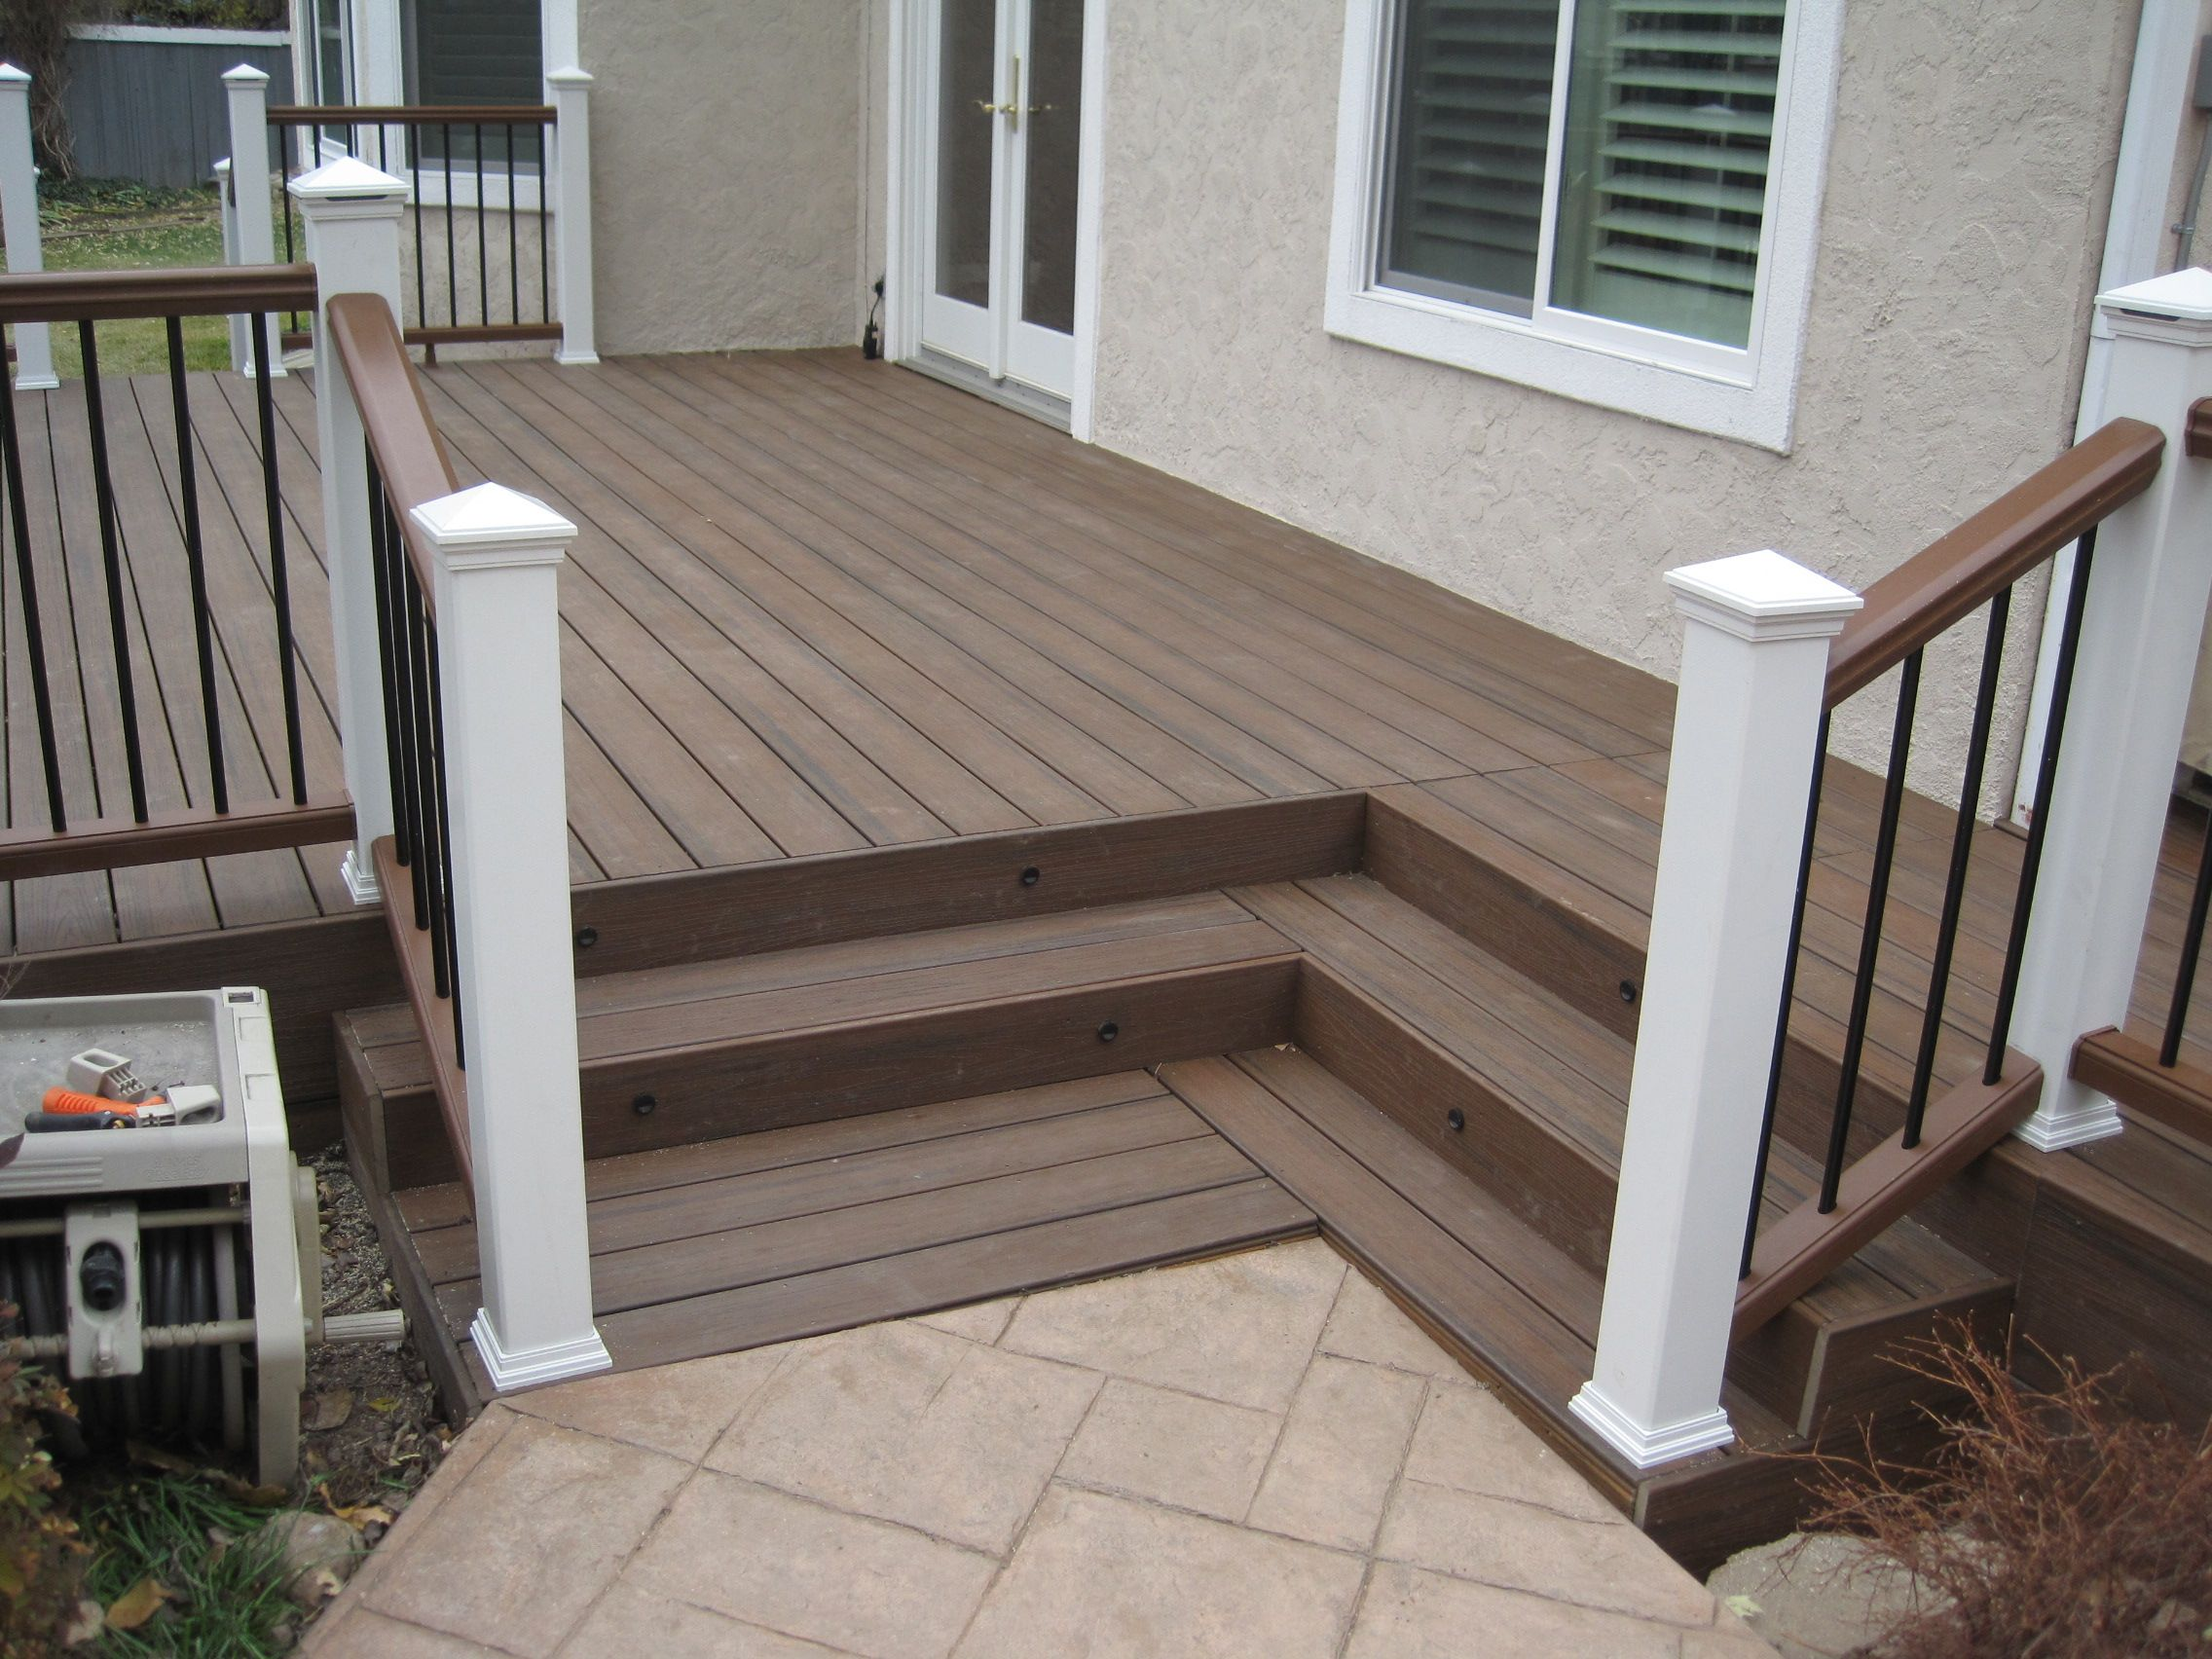 Standard trex decking cost with hight quality of wood for Composite deck railing